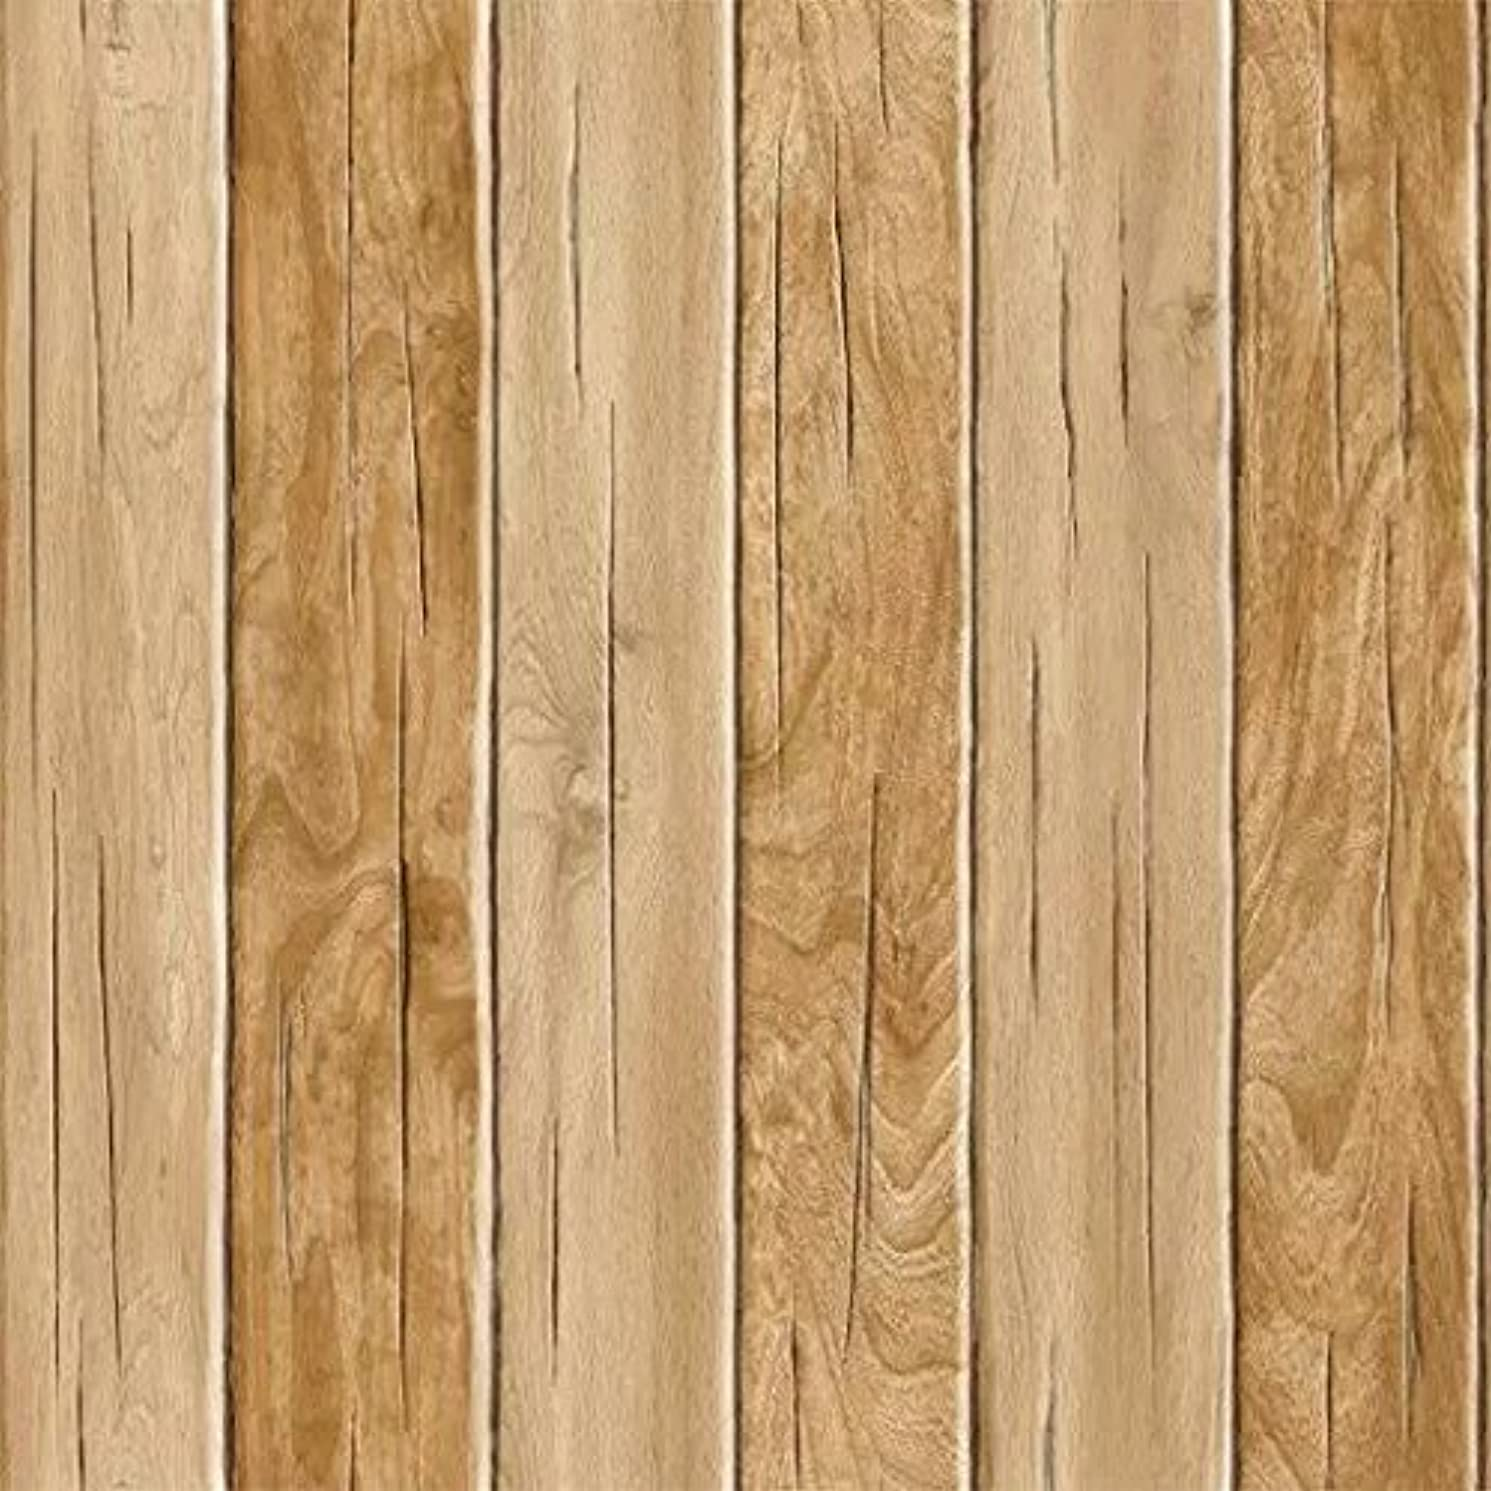 Blooming Wall Vintage Wood Plank Wood Panel Wallpaper Wall Mural For Livingroom Kitchen Bathroom, 20.8 In32.8 Ft=57 Sq.ft (8-66021)